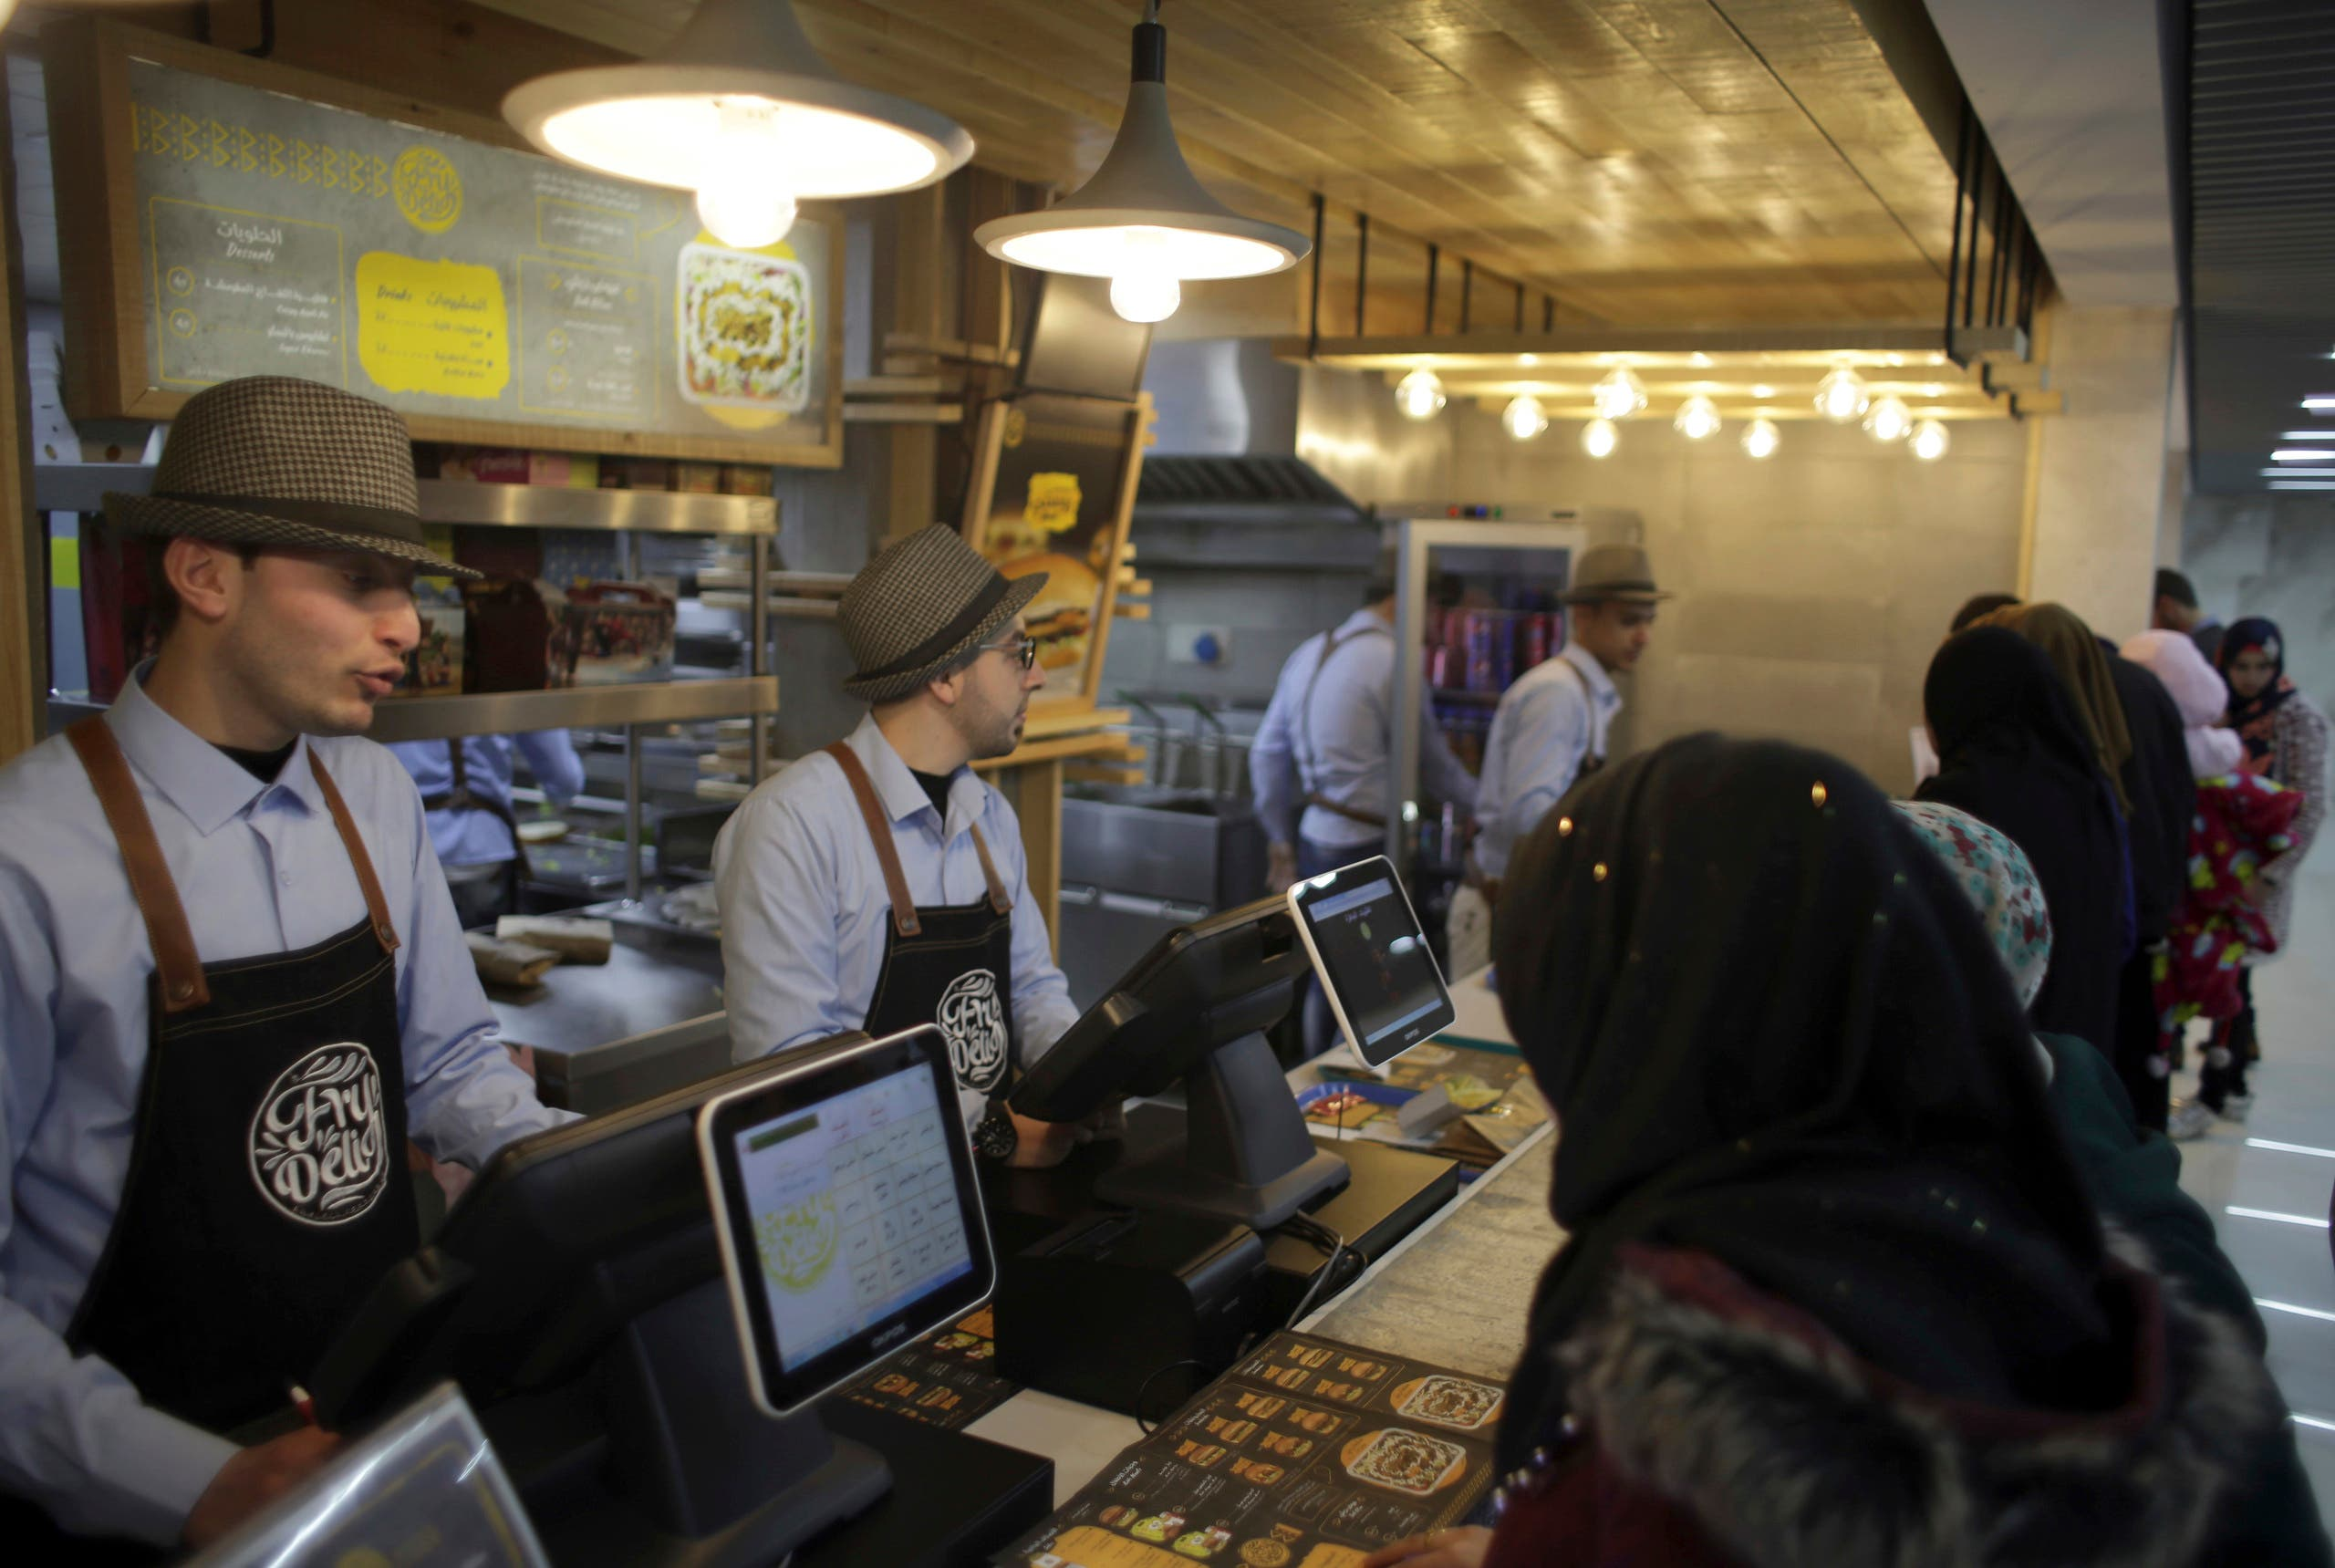 Palestinians buy fast food from the food court in the first indoor shopping mall in the Gaza Strip, in Gaza City. (AP)